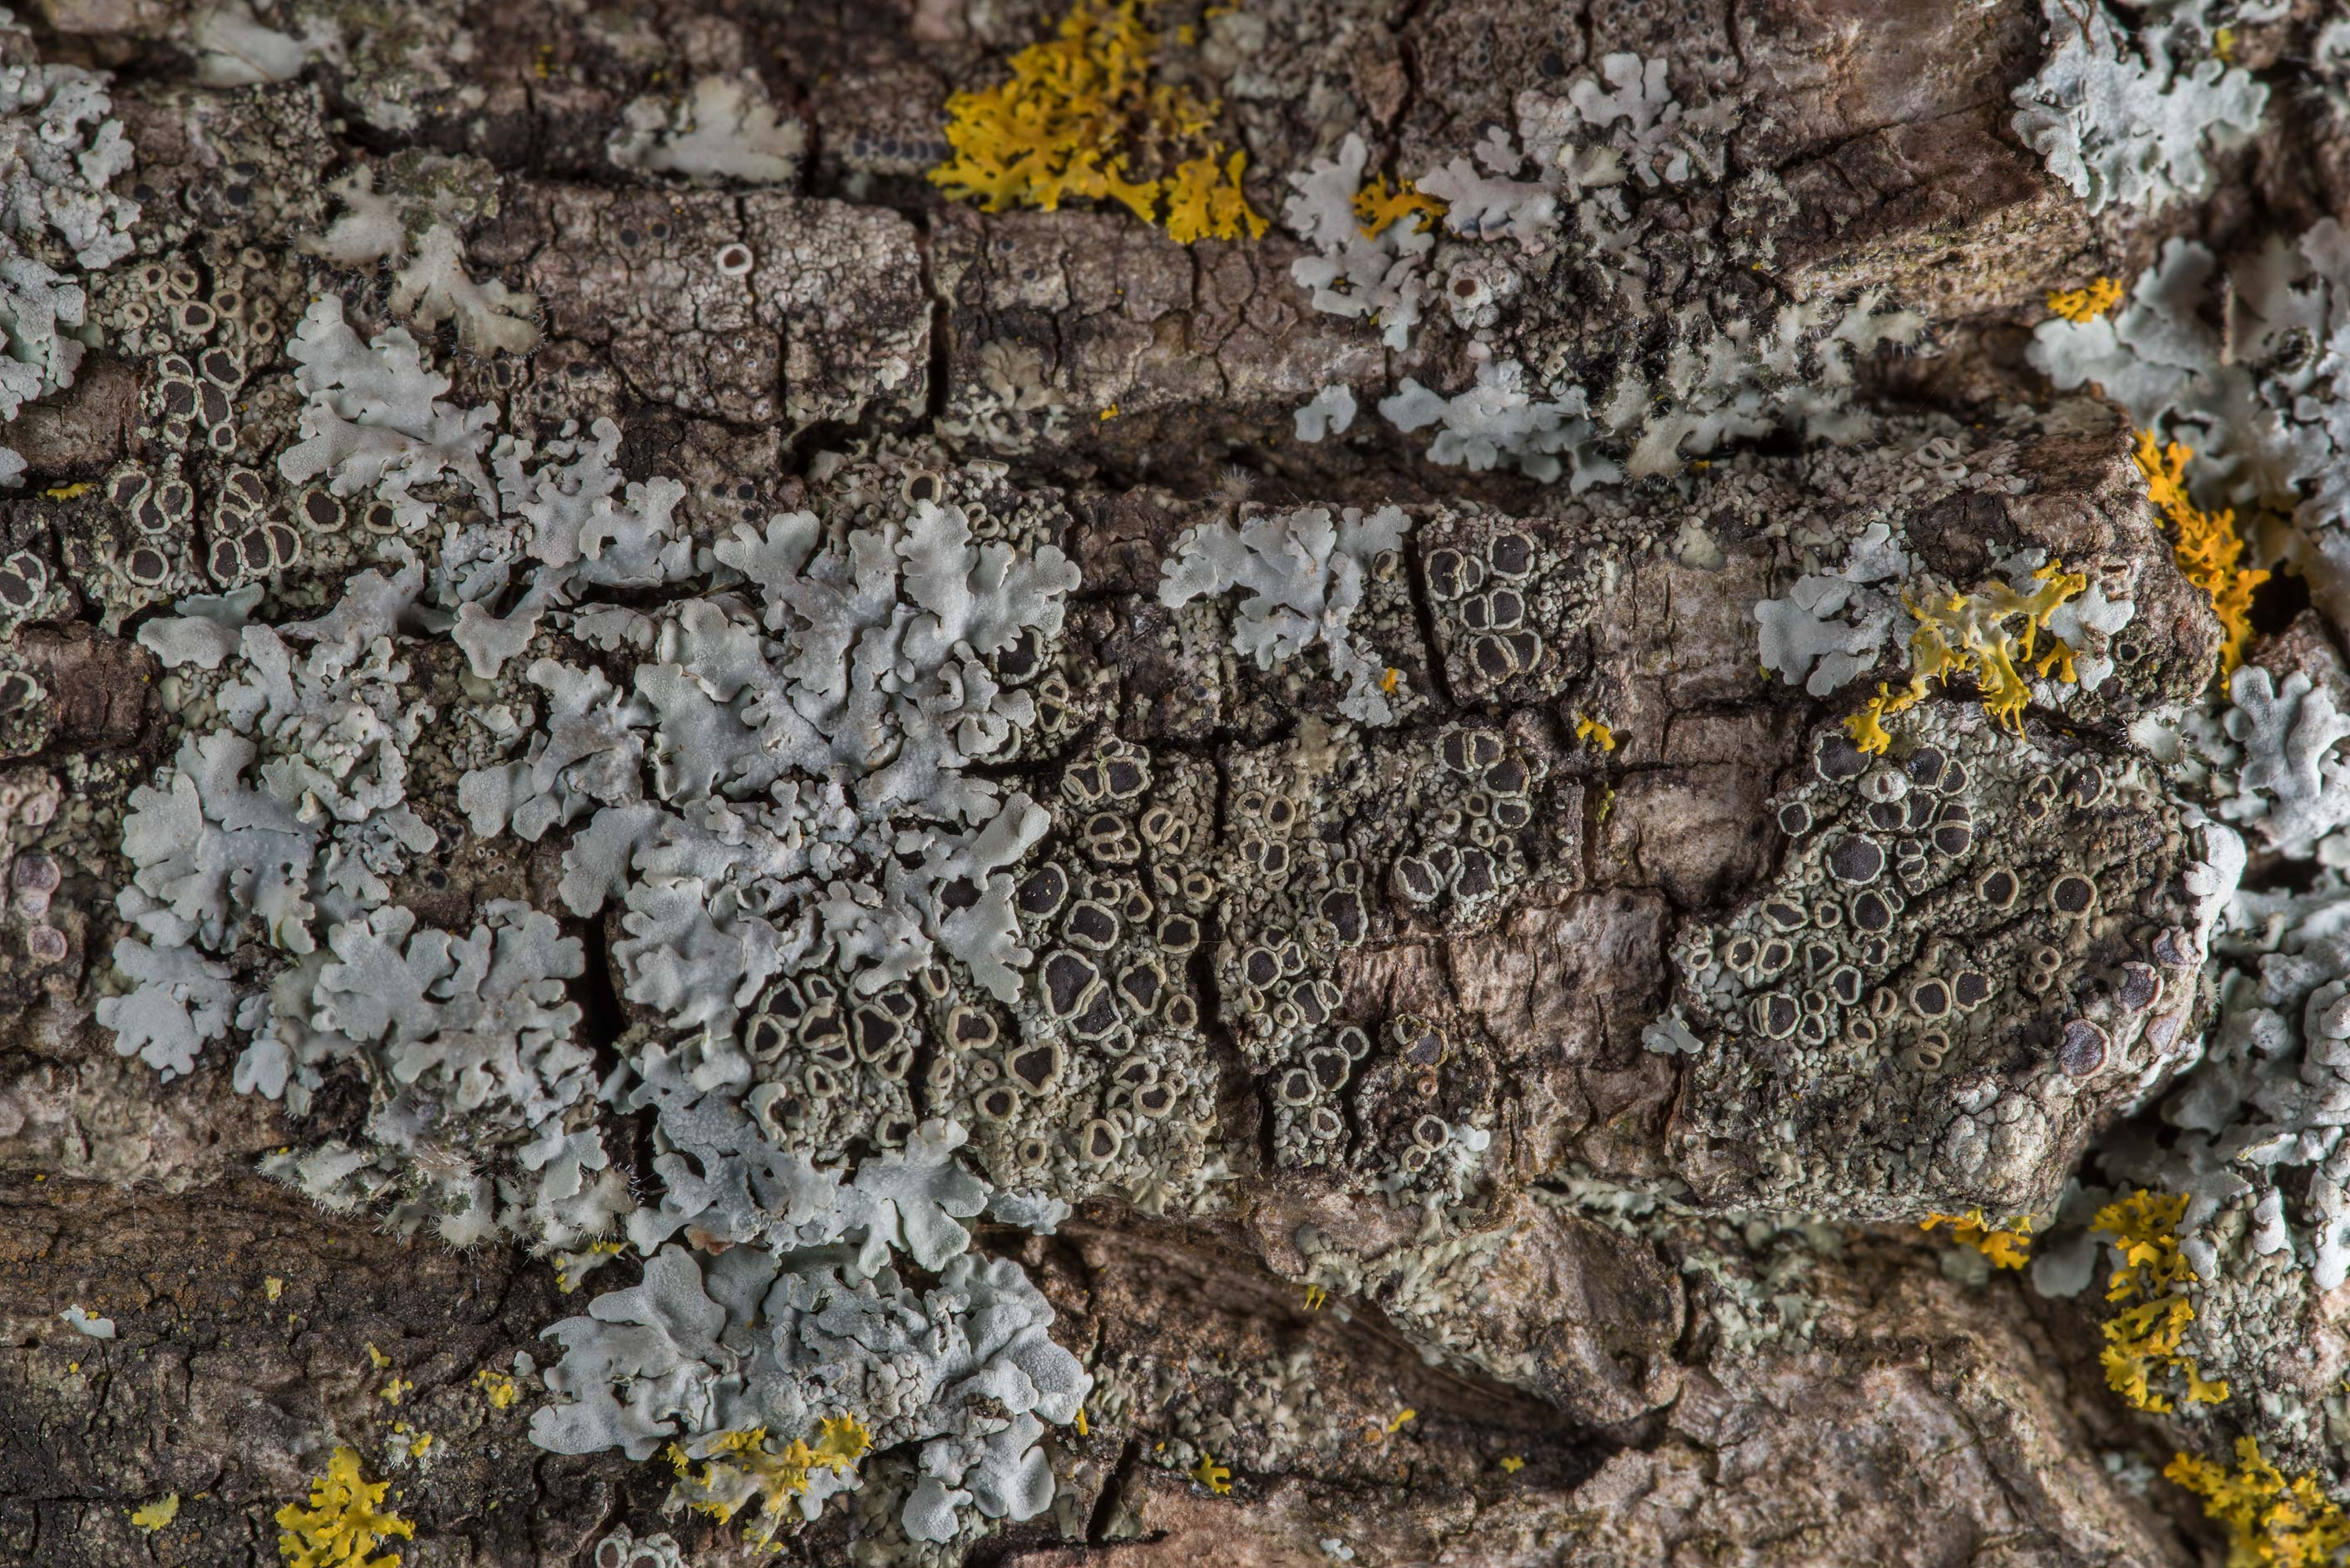 Various lichens on acacia tree bark in TAMU...M University. College Station, Texas